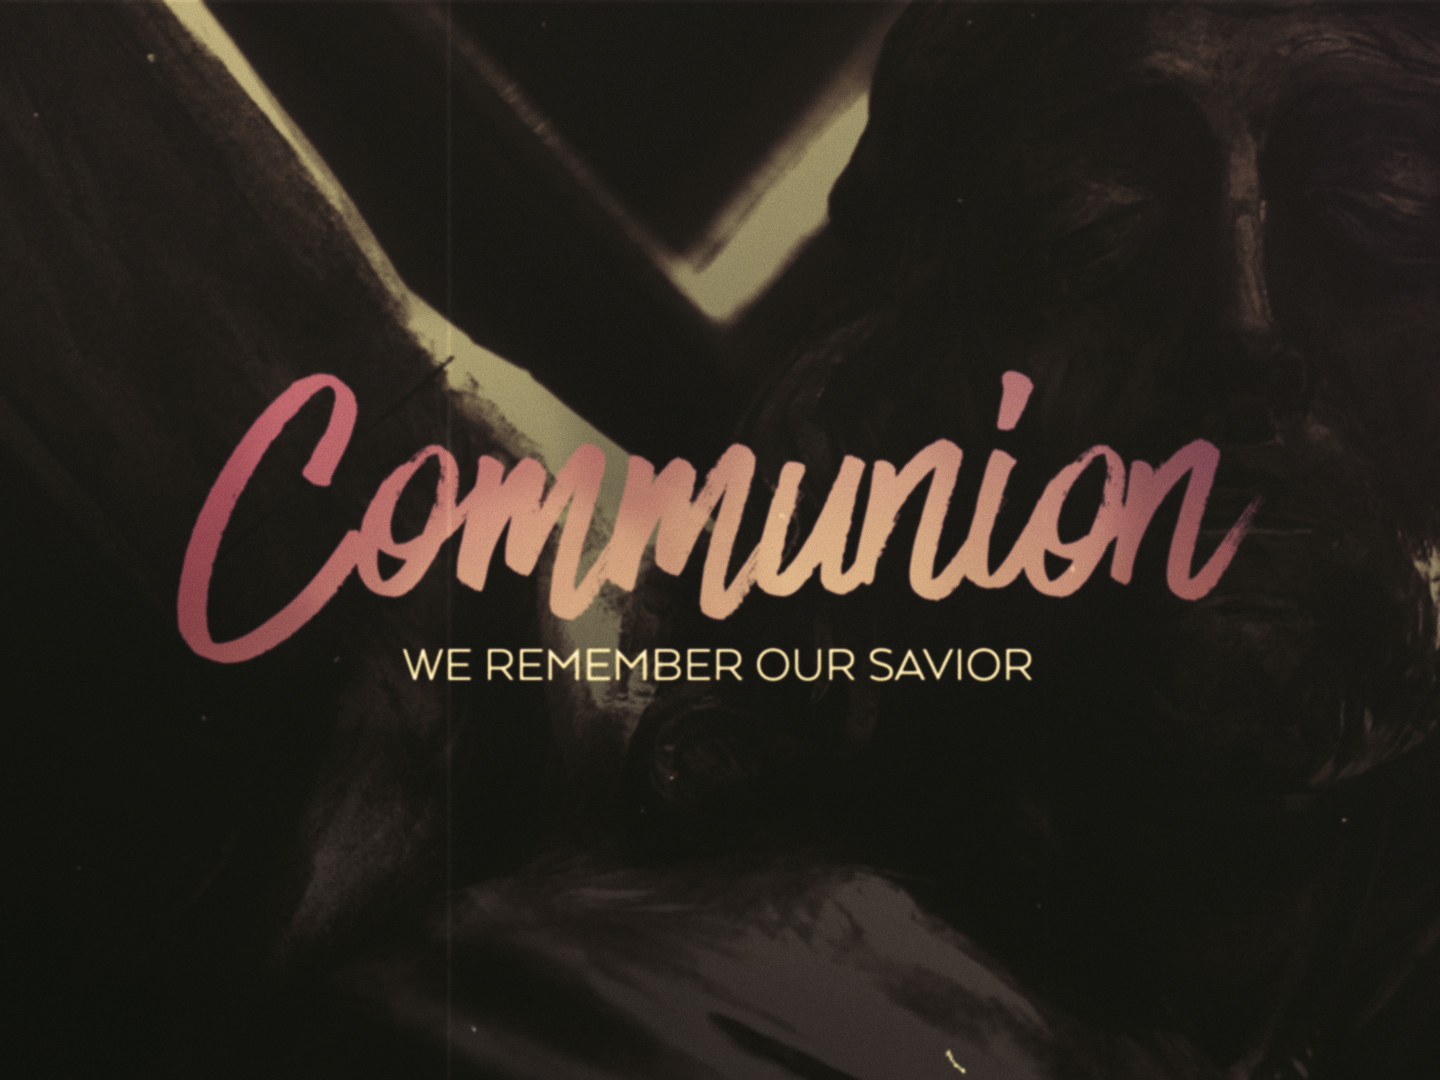 FRIDAY WORDS COMMUNION